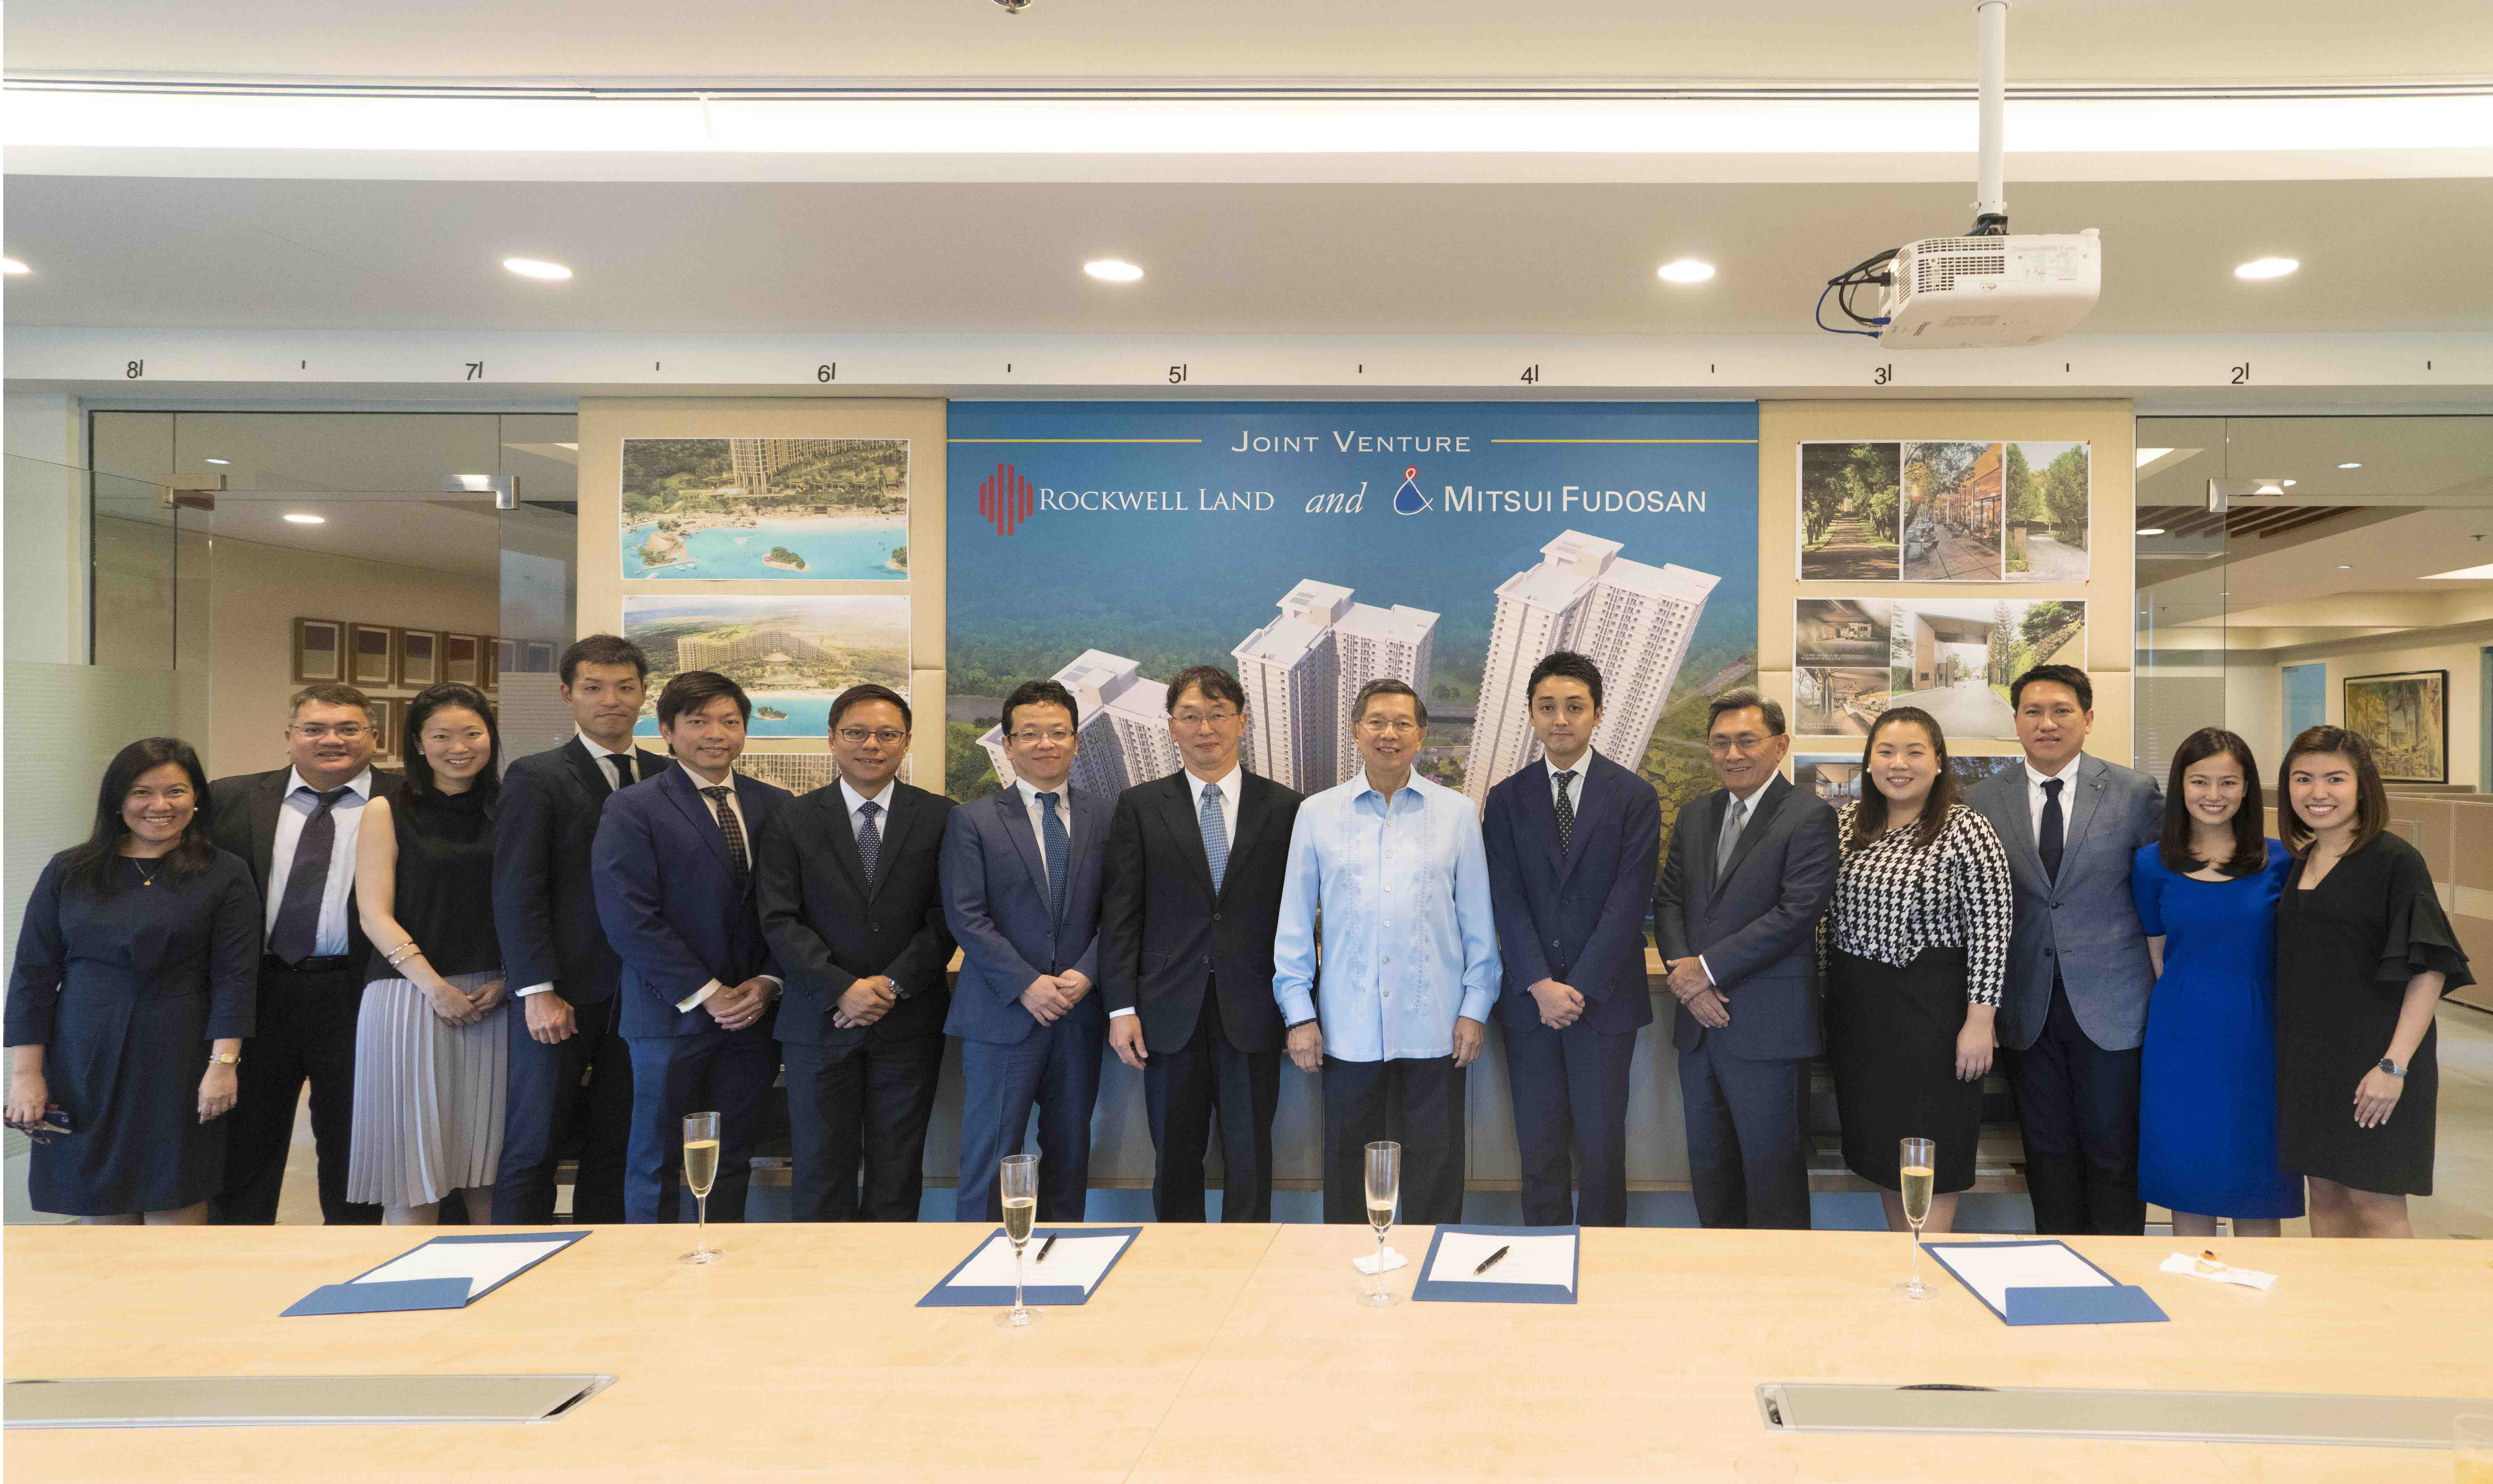 Rockwell Land chairman Ambassador Manuel M. Lopez (9th from left), president Nestor J. Padilla (11th from left) and SVP Mike Lopez (6th from left) with the Rockwell Land team and Mitsui Fudosan Asia Pte. Ltd. representatives